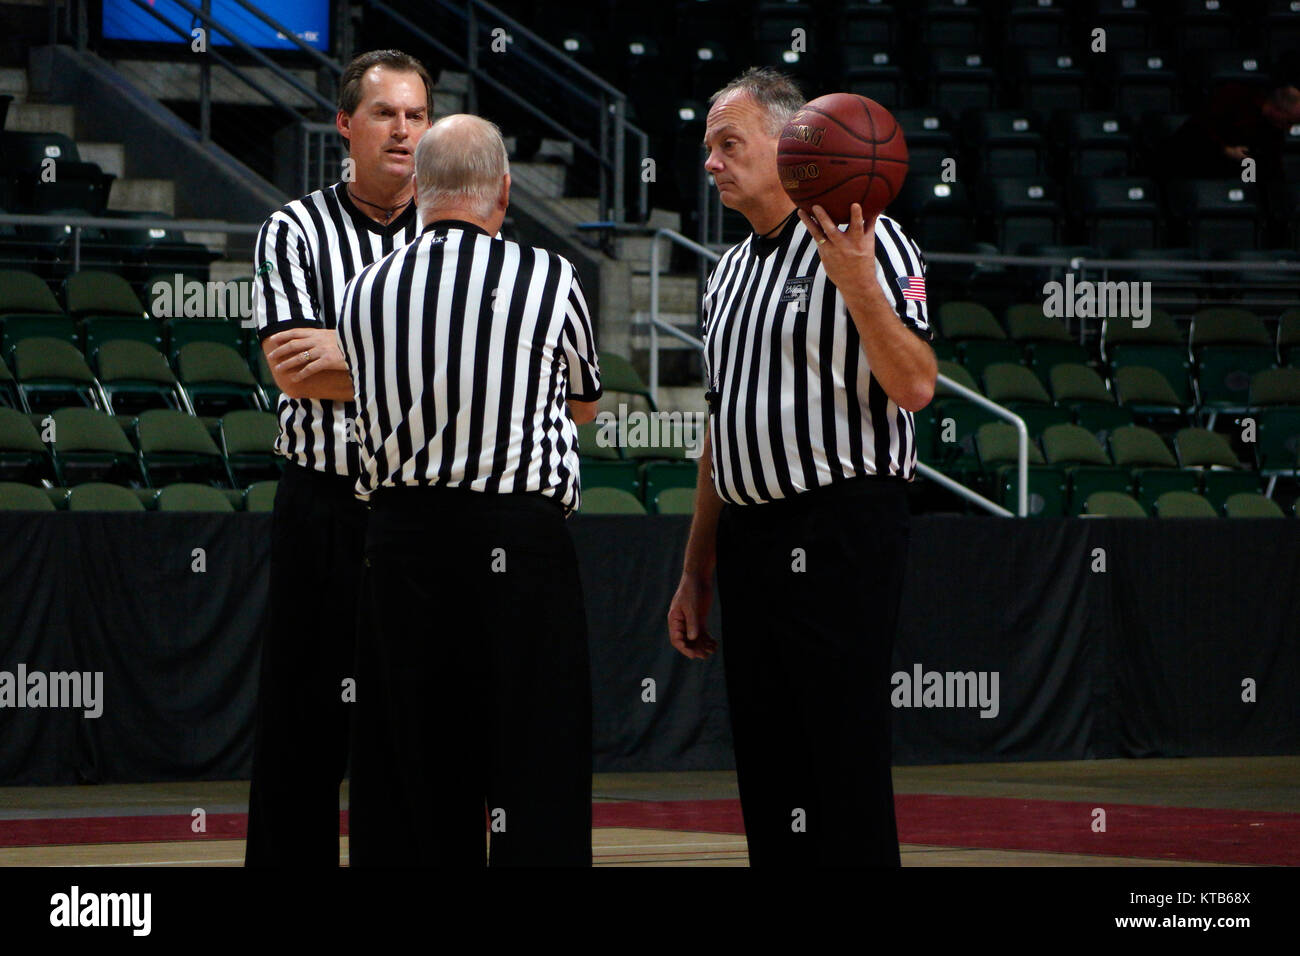 Basketball referees discussing a game during a team timeout. - Stock Image